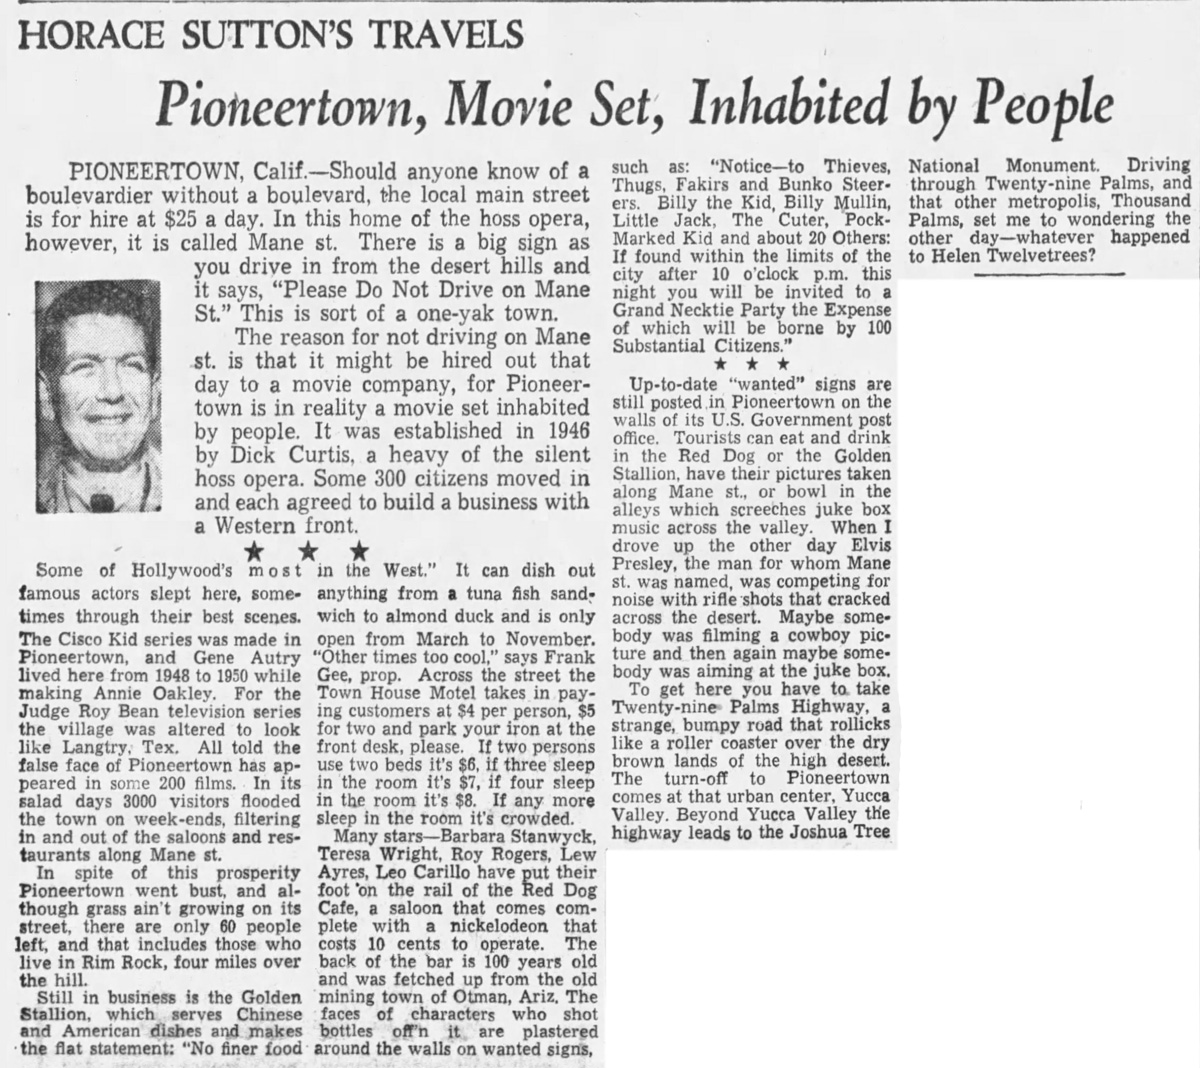 Mar. 24, 1957 - The Boston Globe article clipping